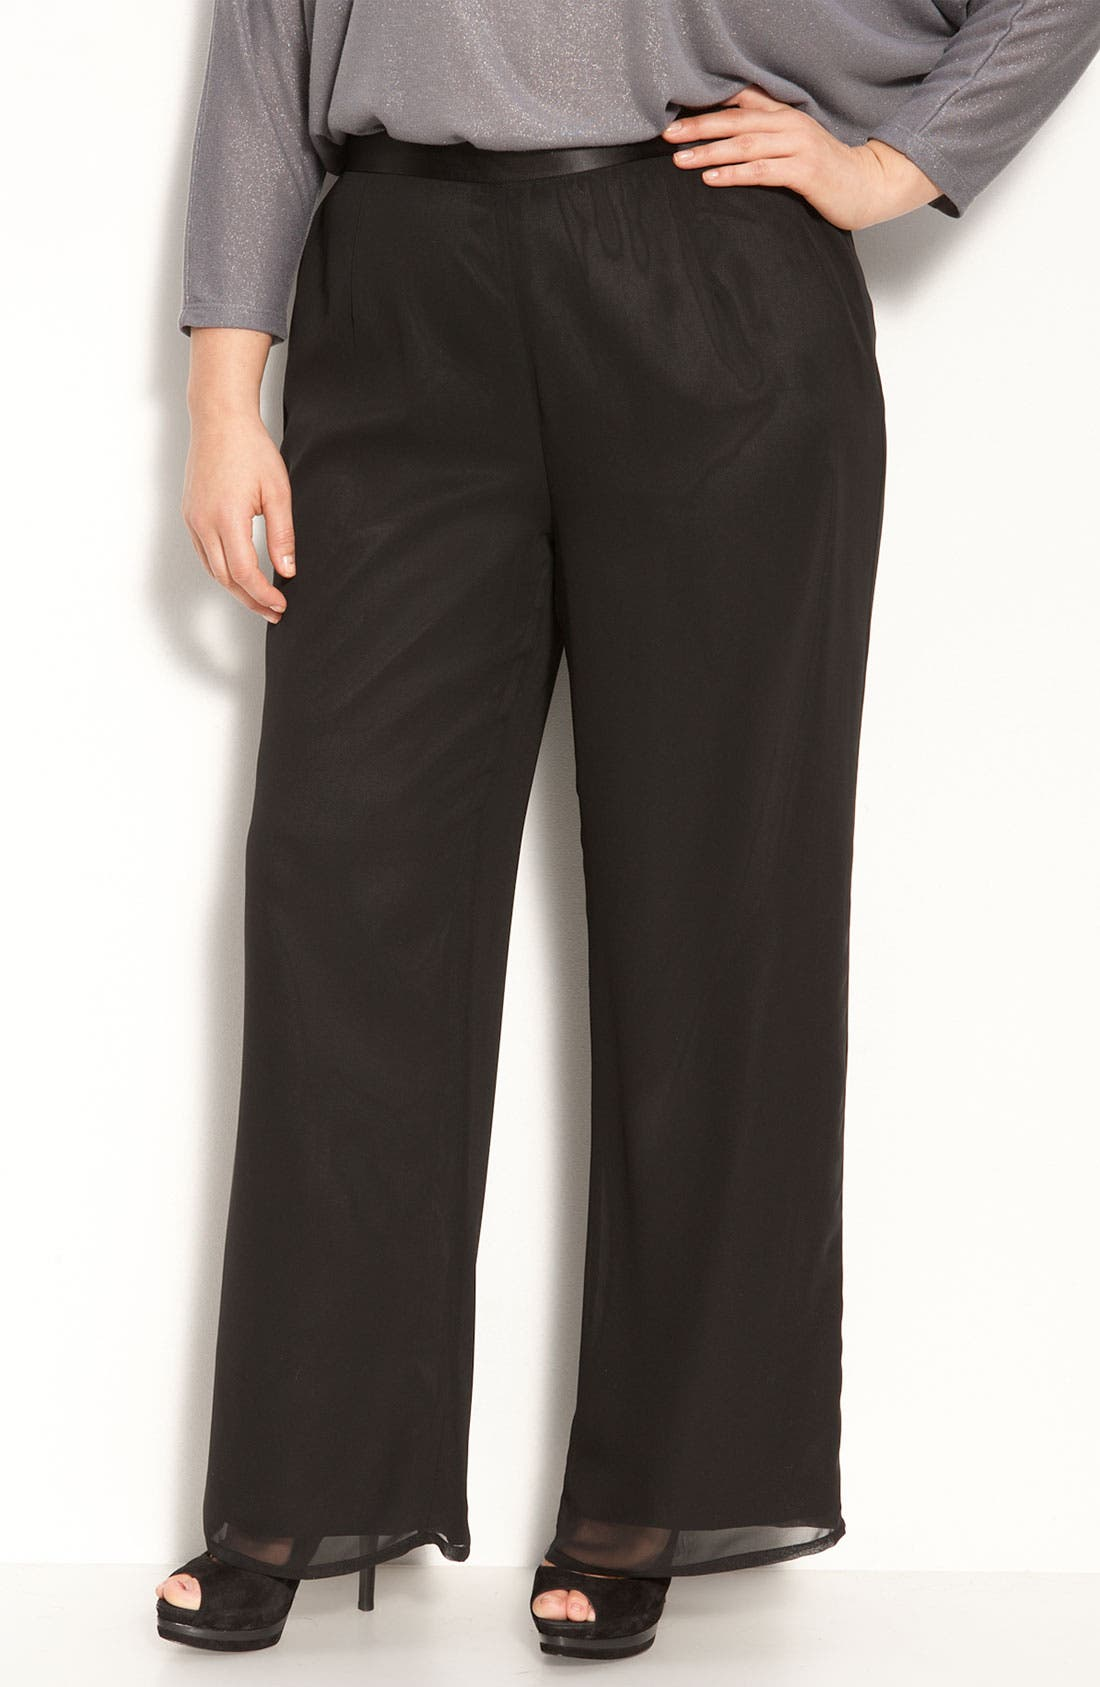 Alternate Image 1 Selected - Adrianna Papell Chiffon Pants (Plus)